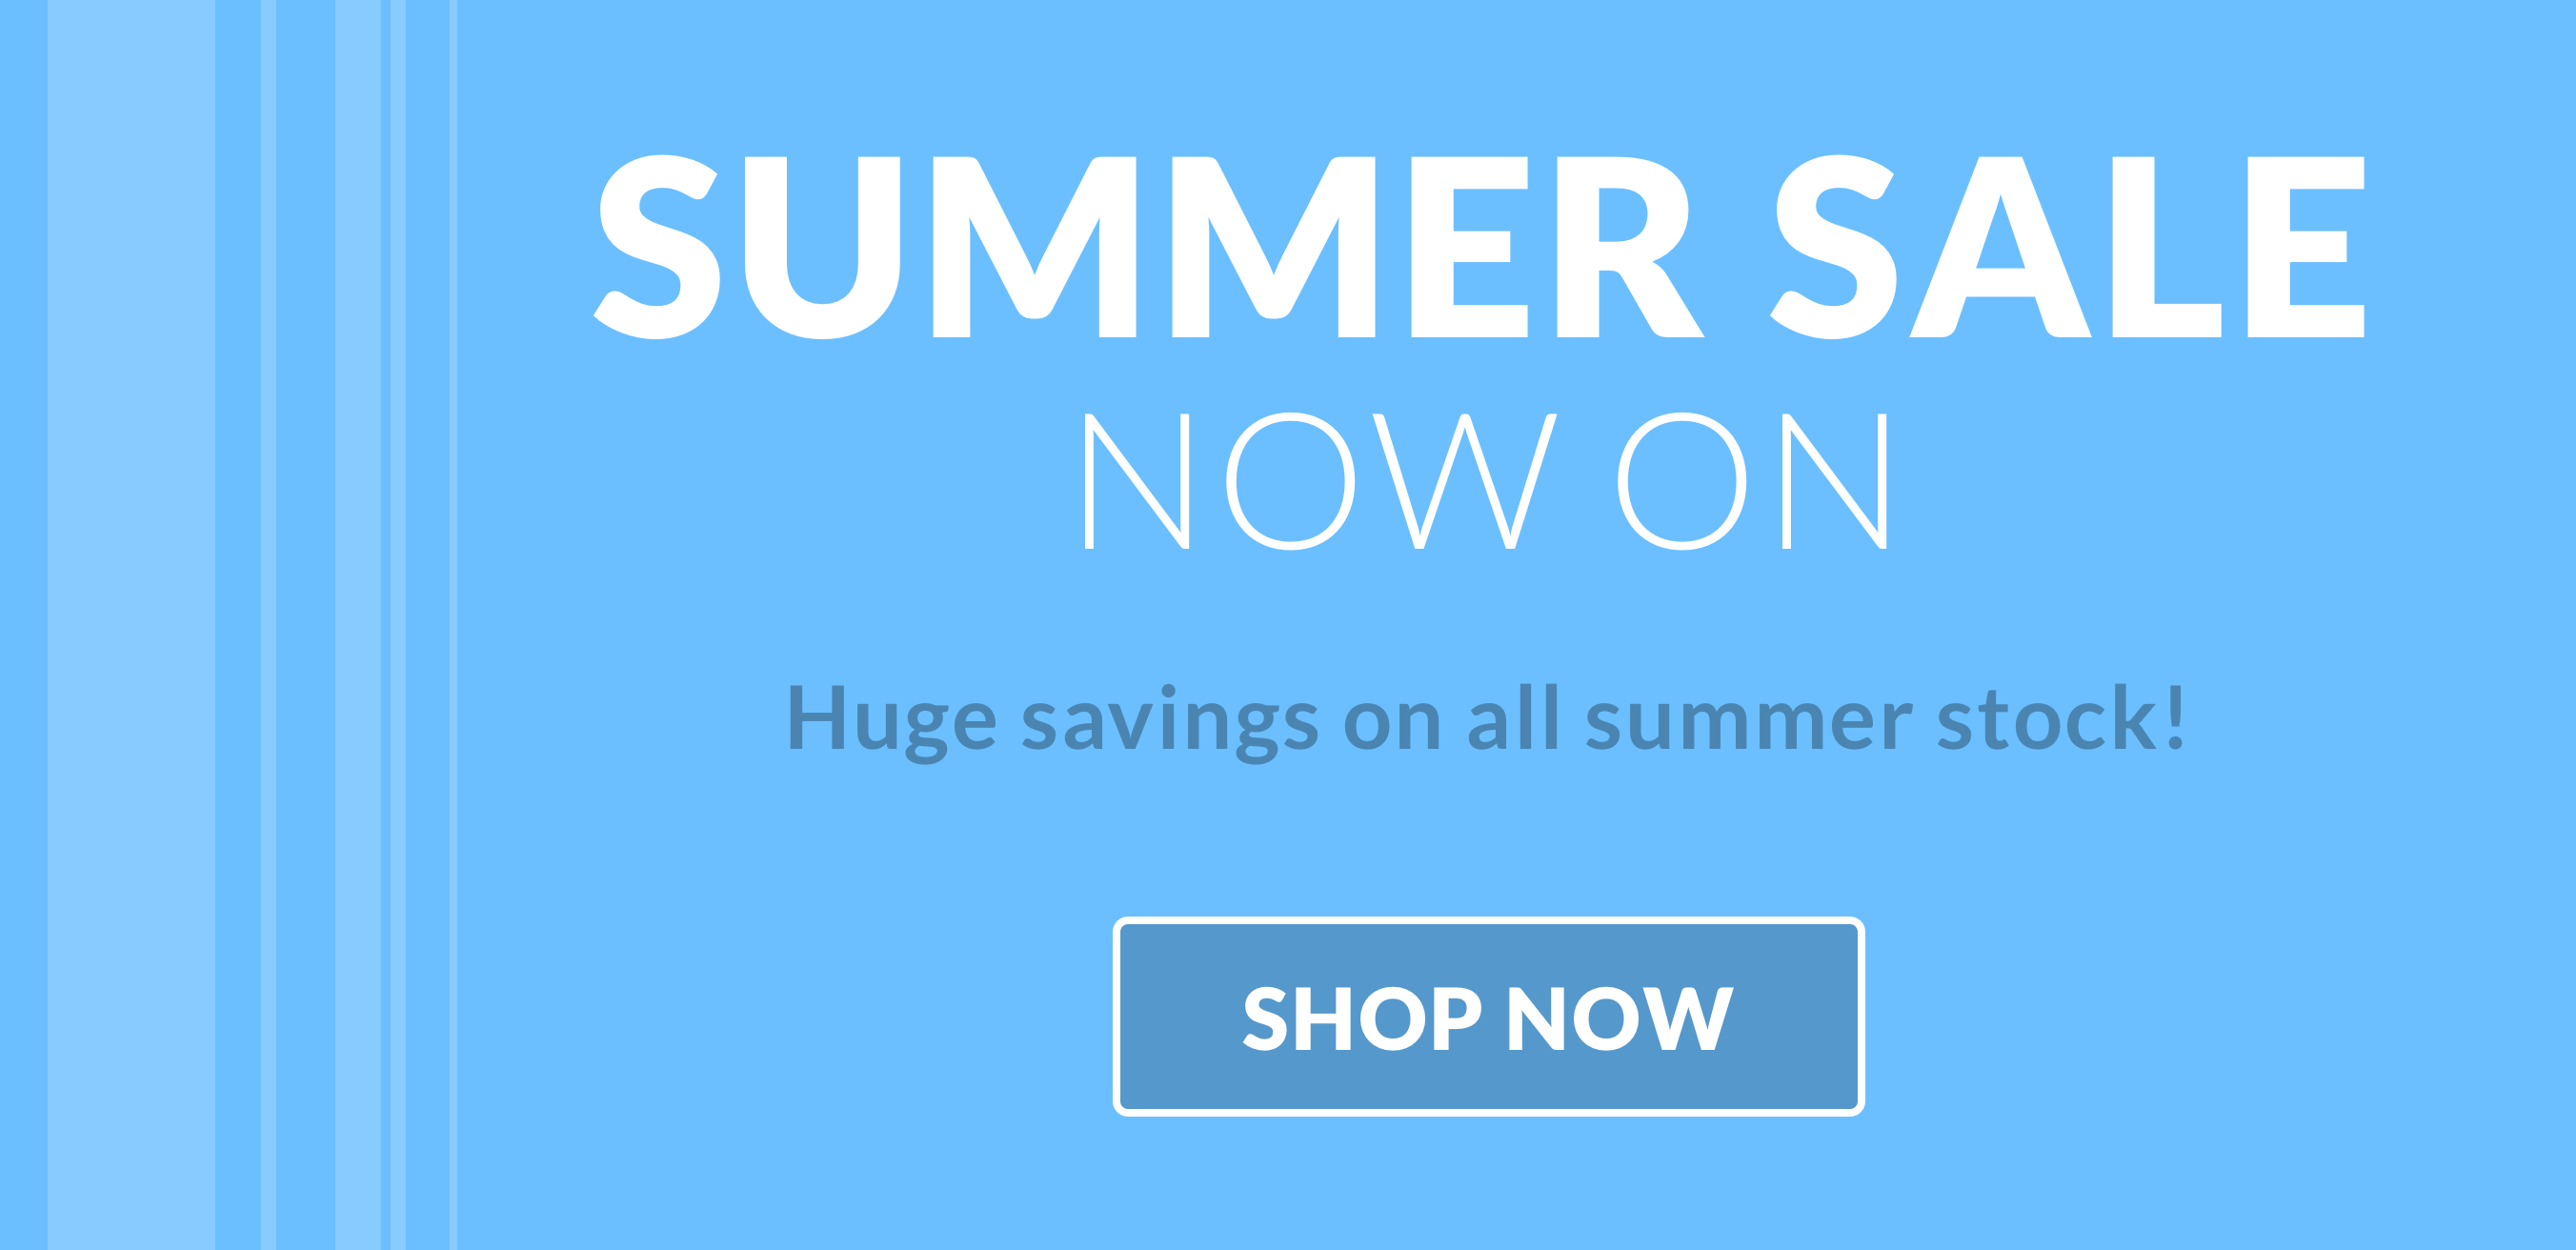 Summer Sale Now On.